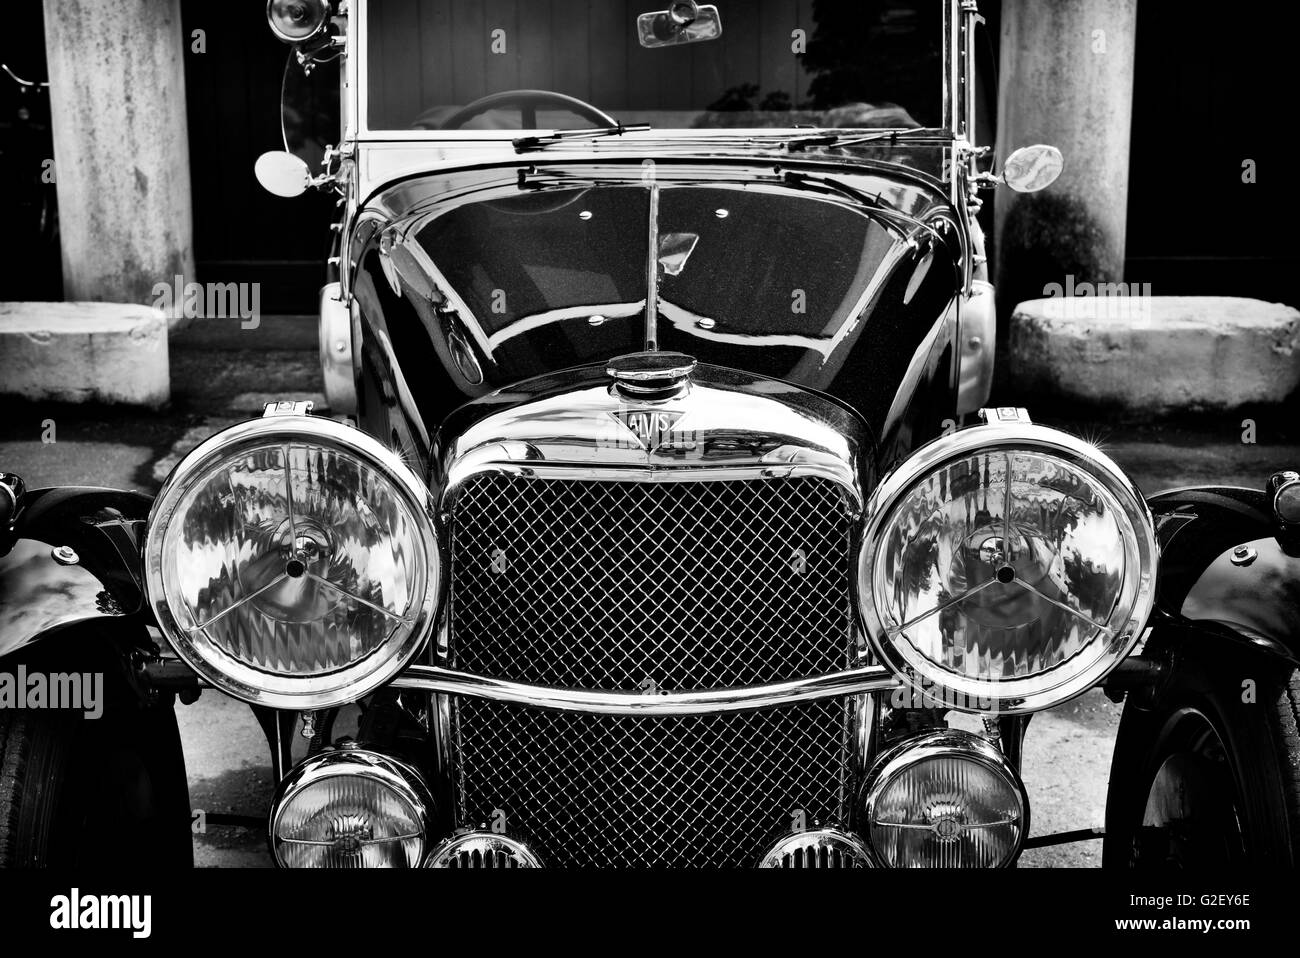 Vintage Alvis car at Bicester Heritage Centre. Oxfordshire, England. Black and White - Stock Image